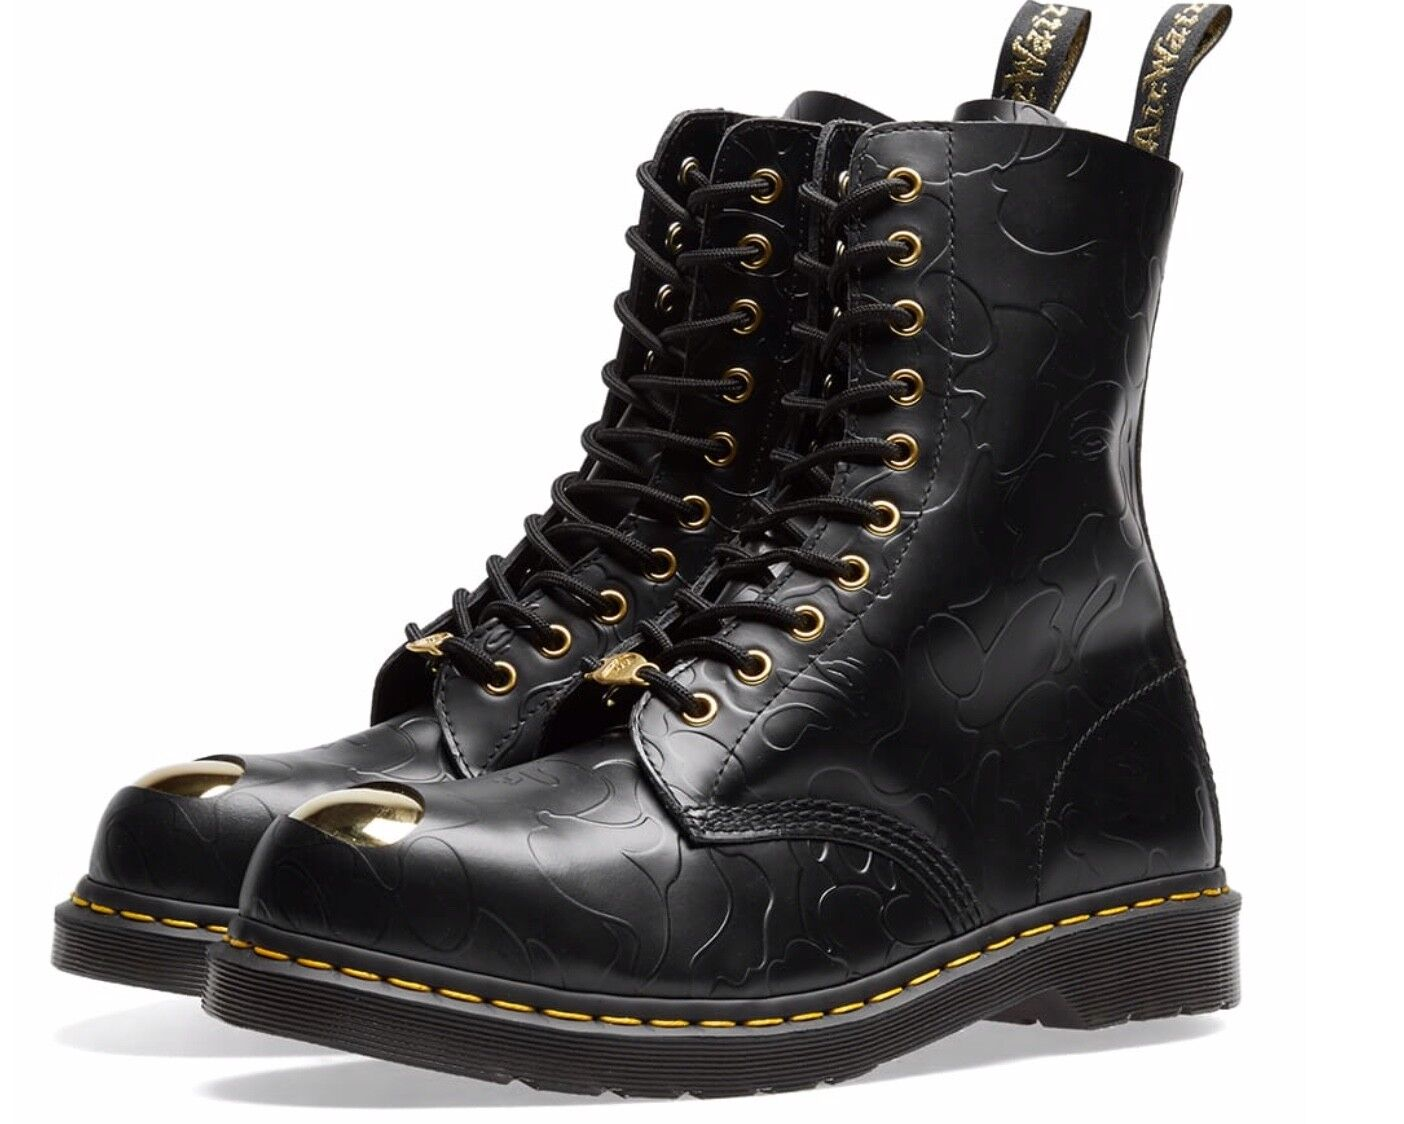 A Bape x Dr. Martens 1490 Black Smooth Emboss   US9   Deadstock   New    400